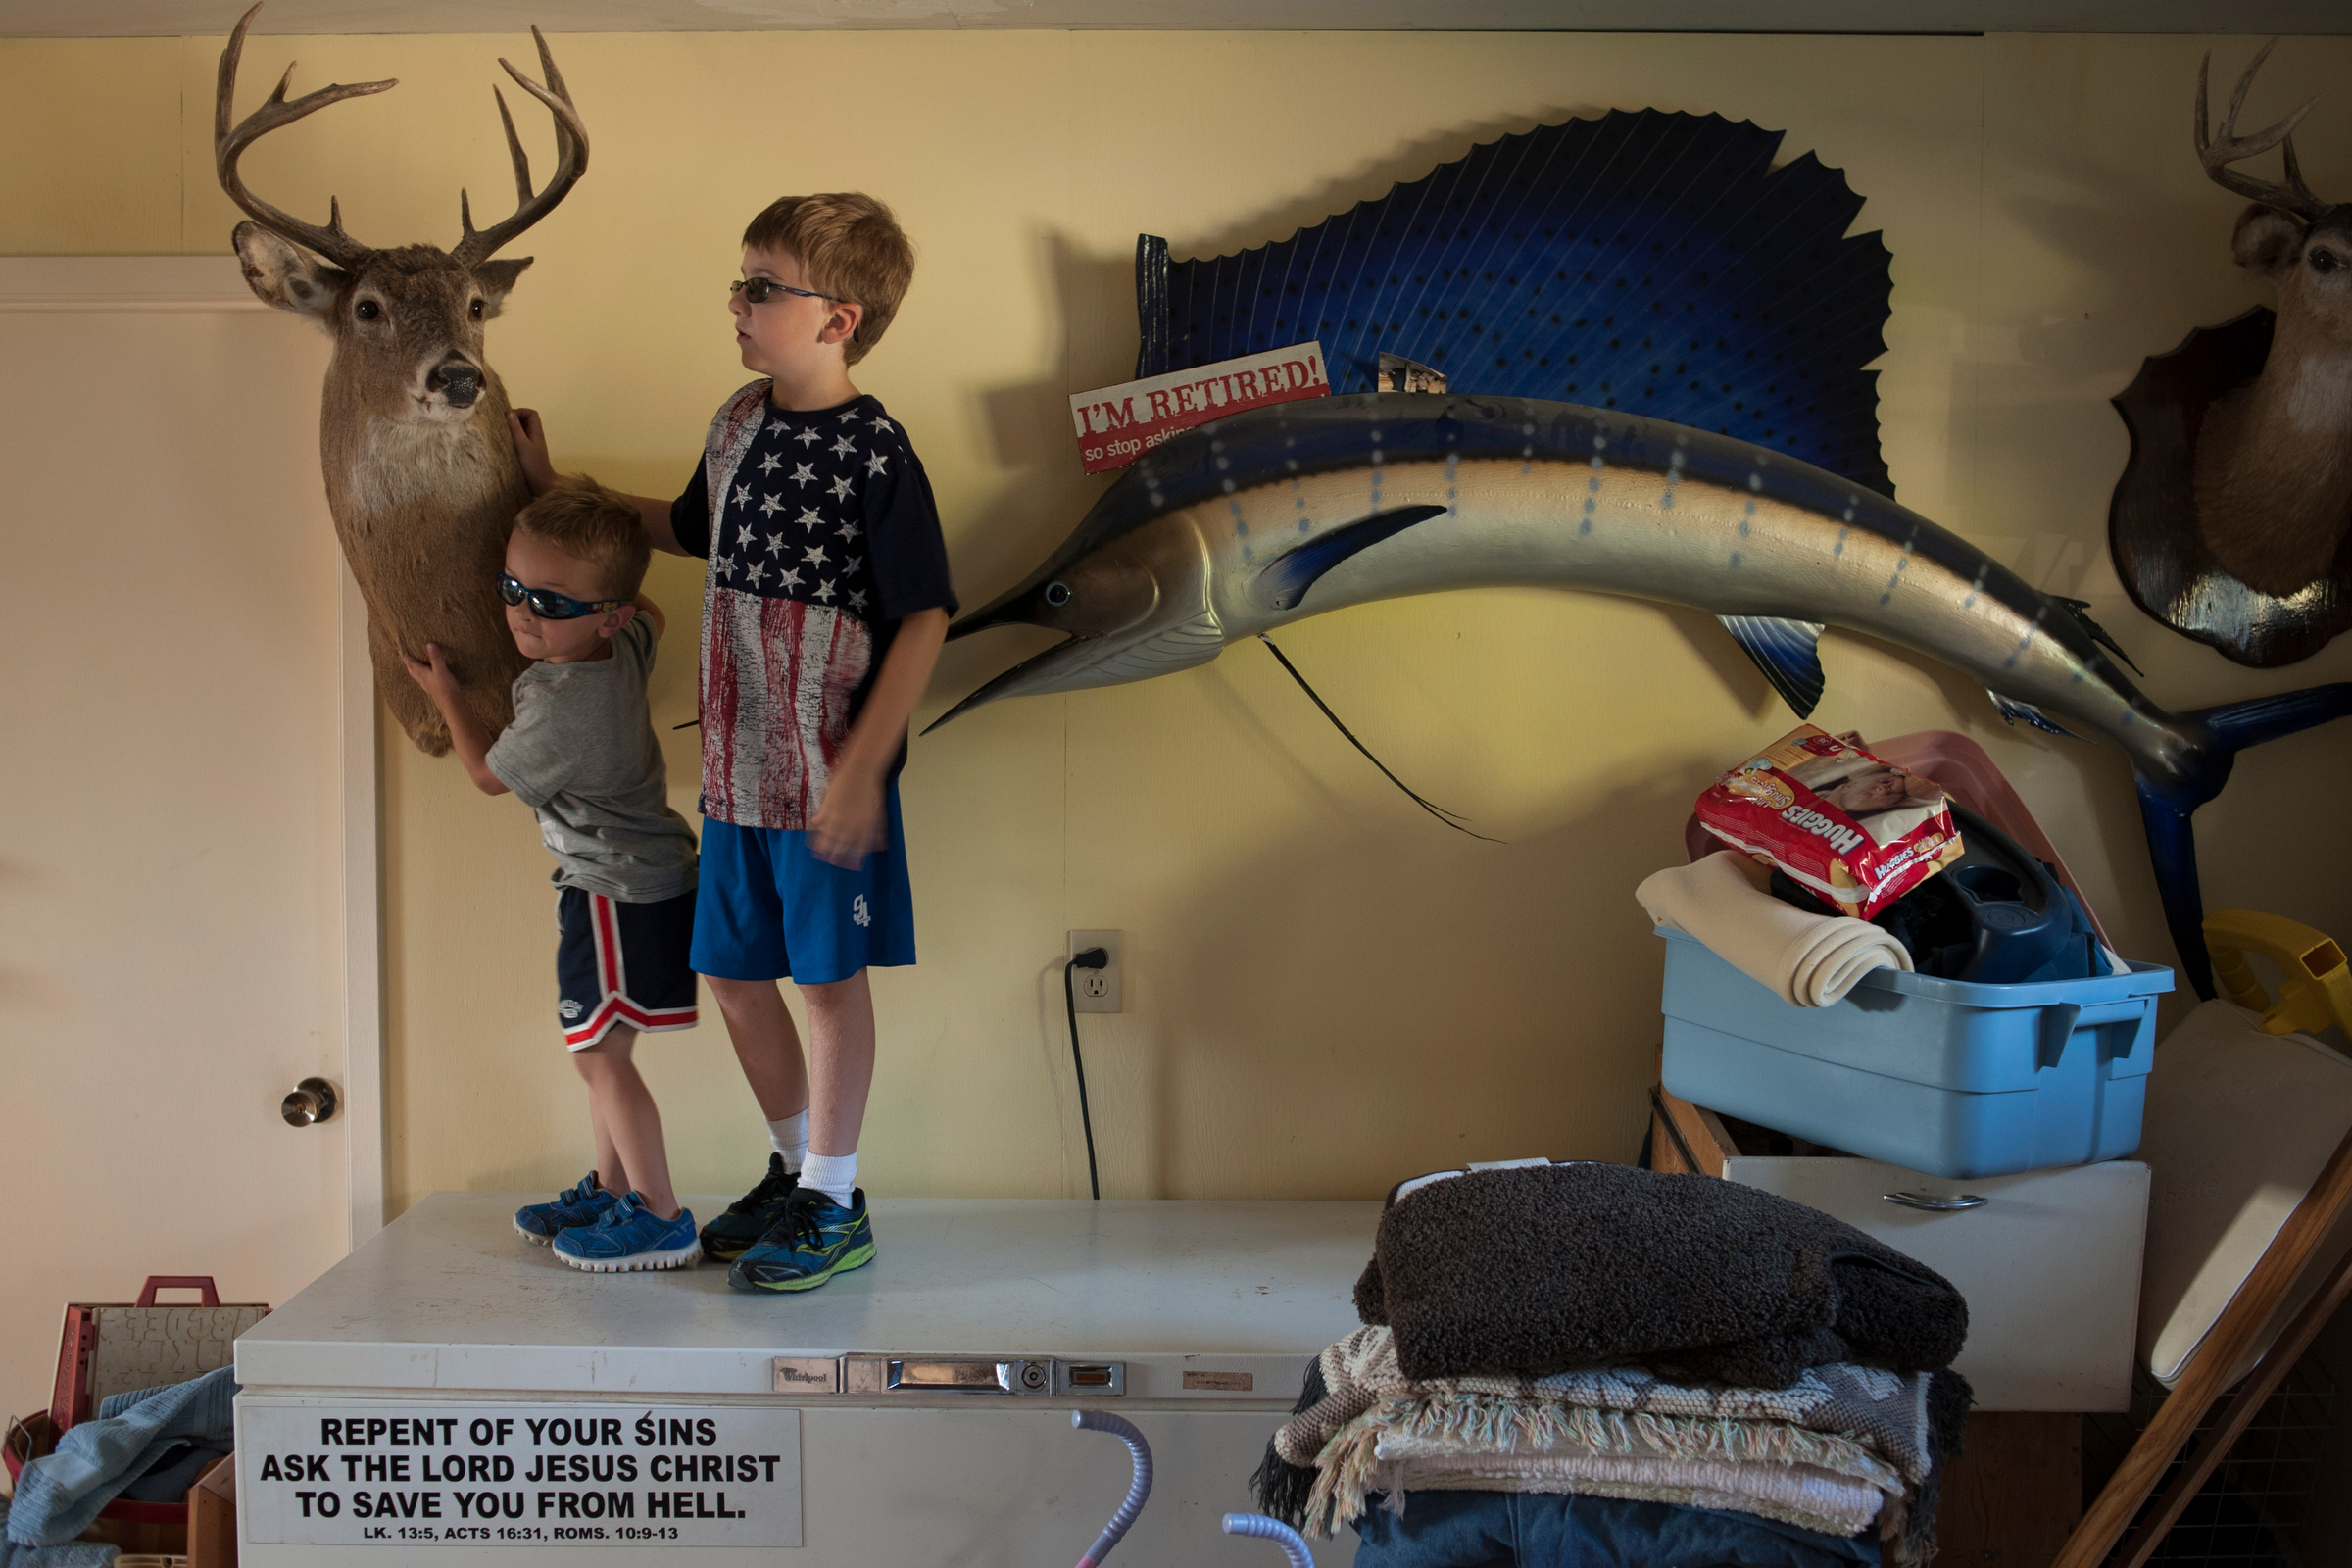 Andrew Weborg, left, plays with his cousin at Andrew's grandparents house. Jeff and Betty Weborg live in the former summer kitchen house that has belonged in the multi-generational fishing family for decades.